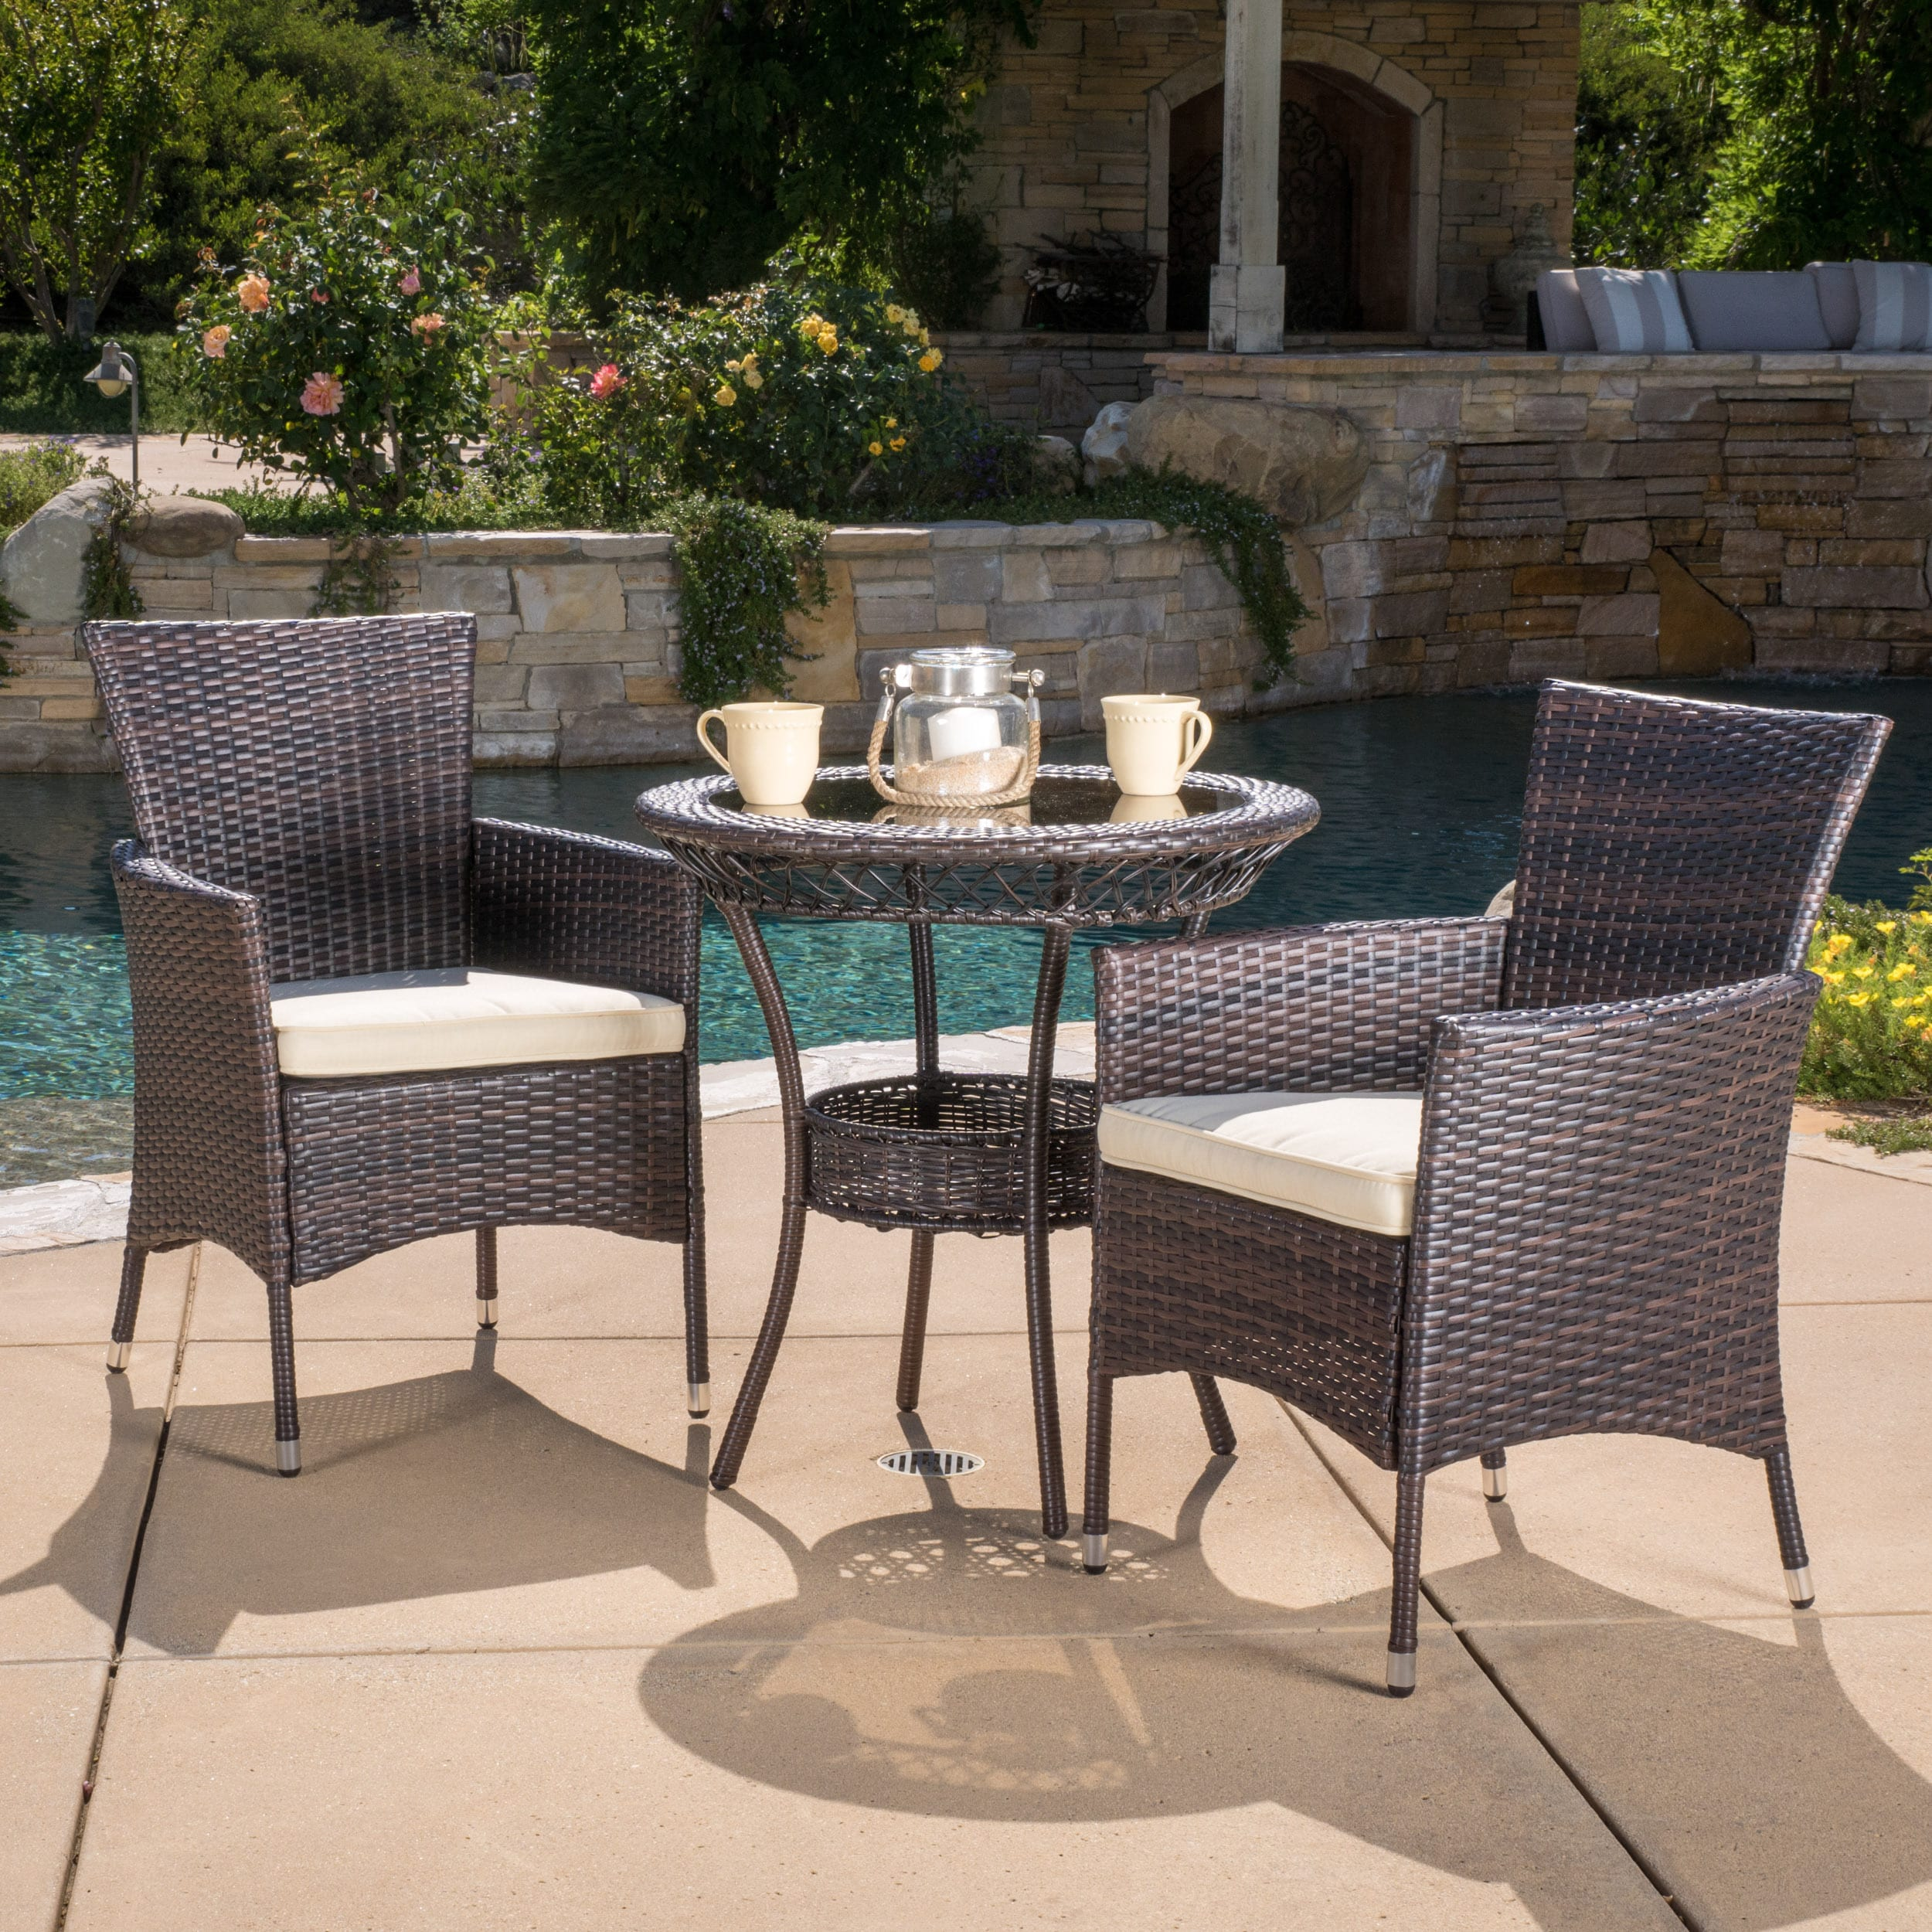 Parker outdoor 3 piece wicker bistro set with cushions by christopher knight home